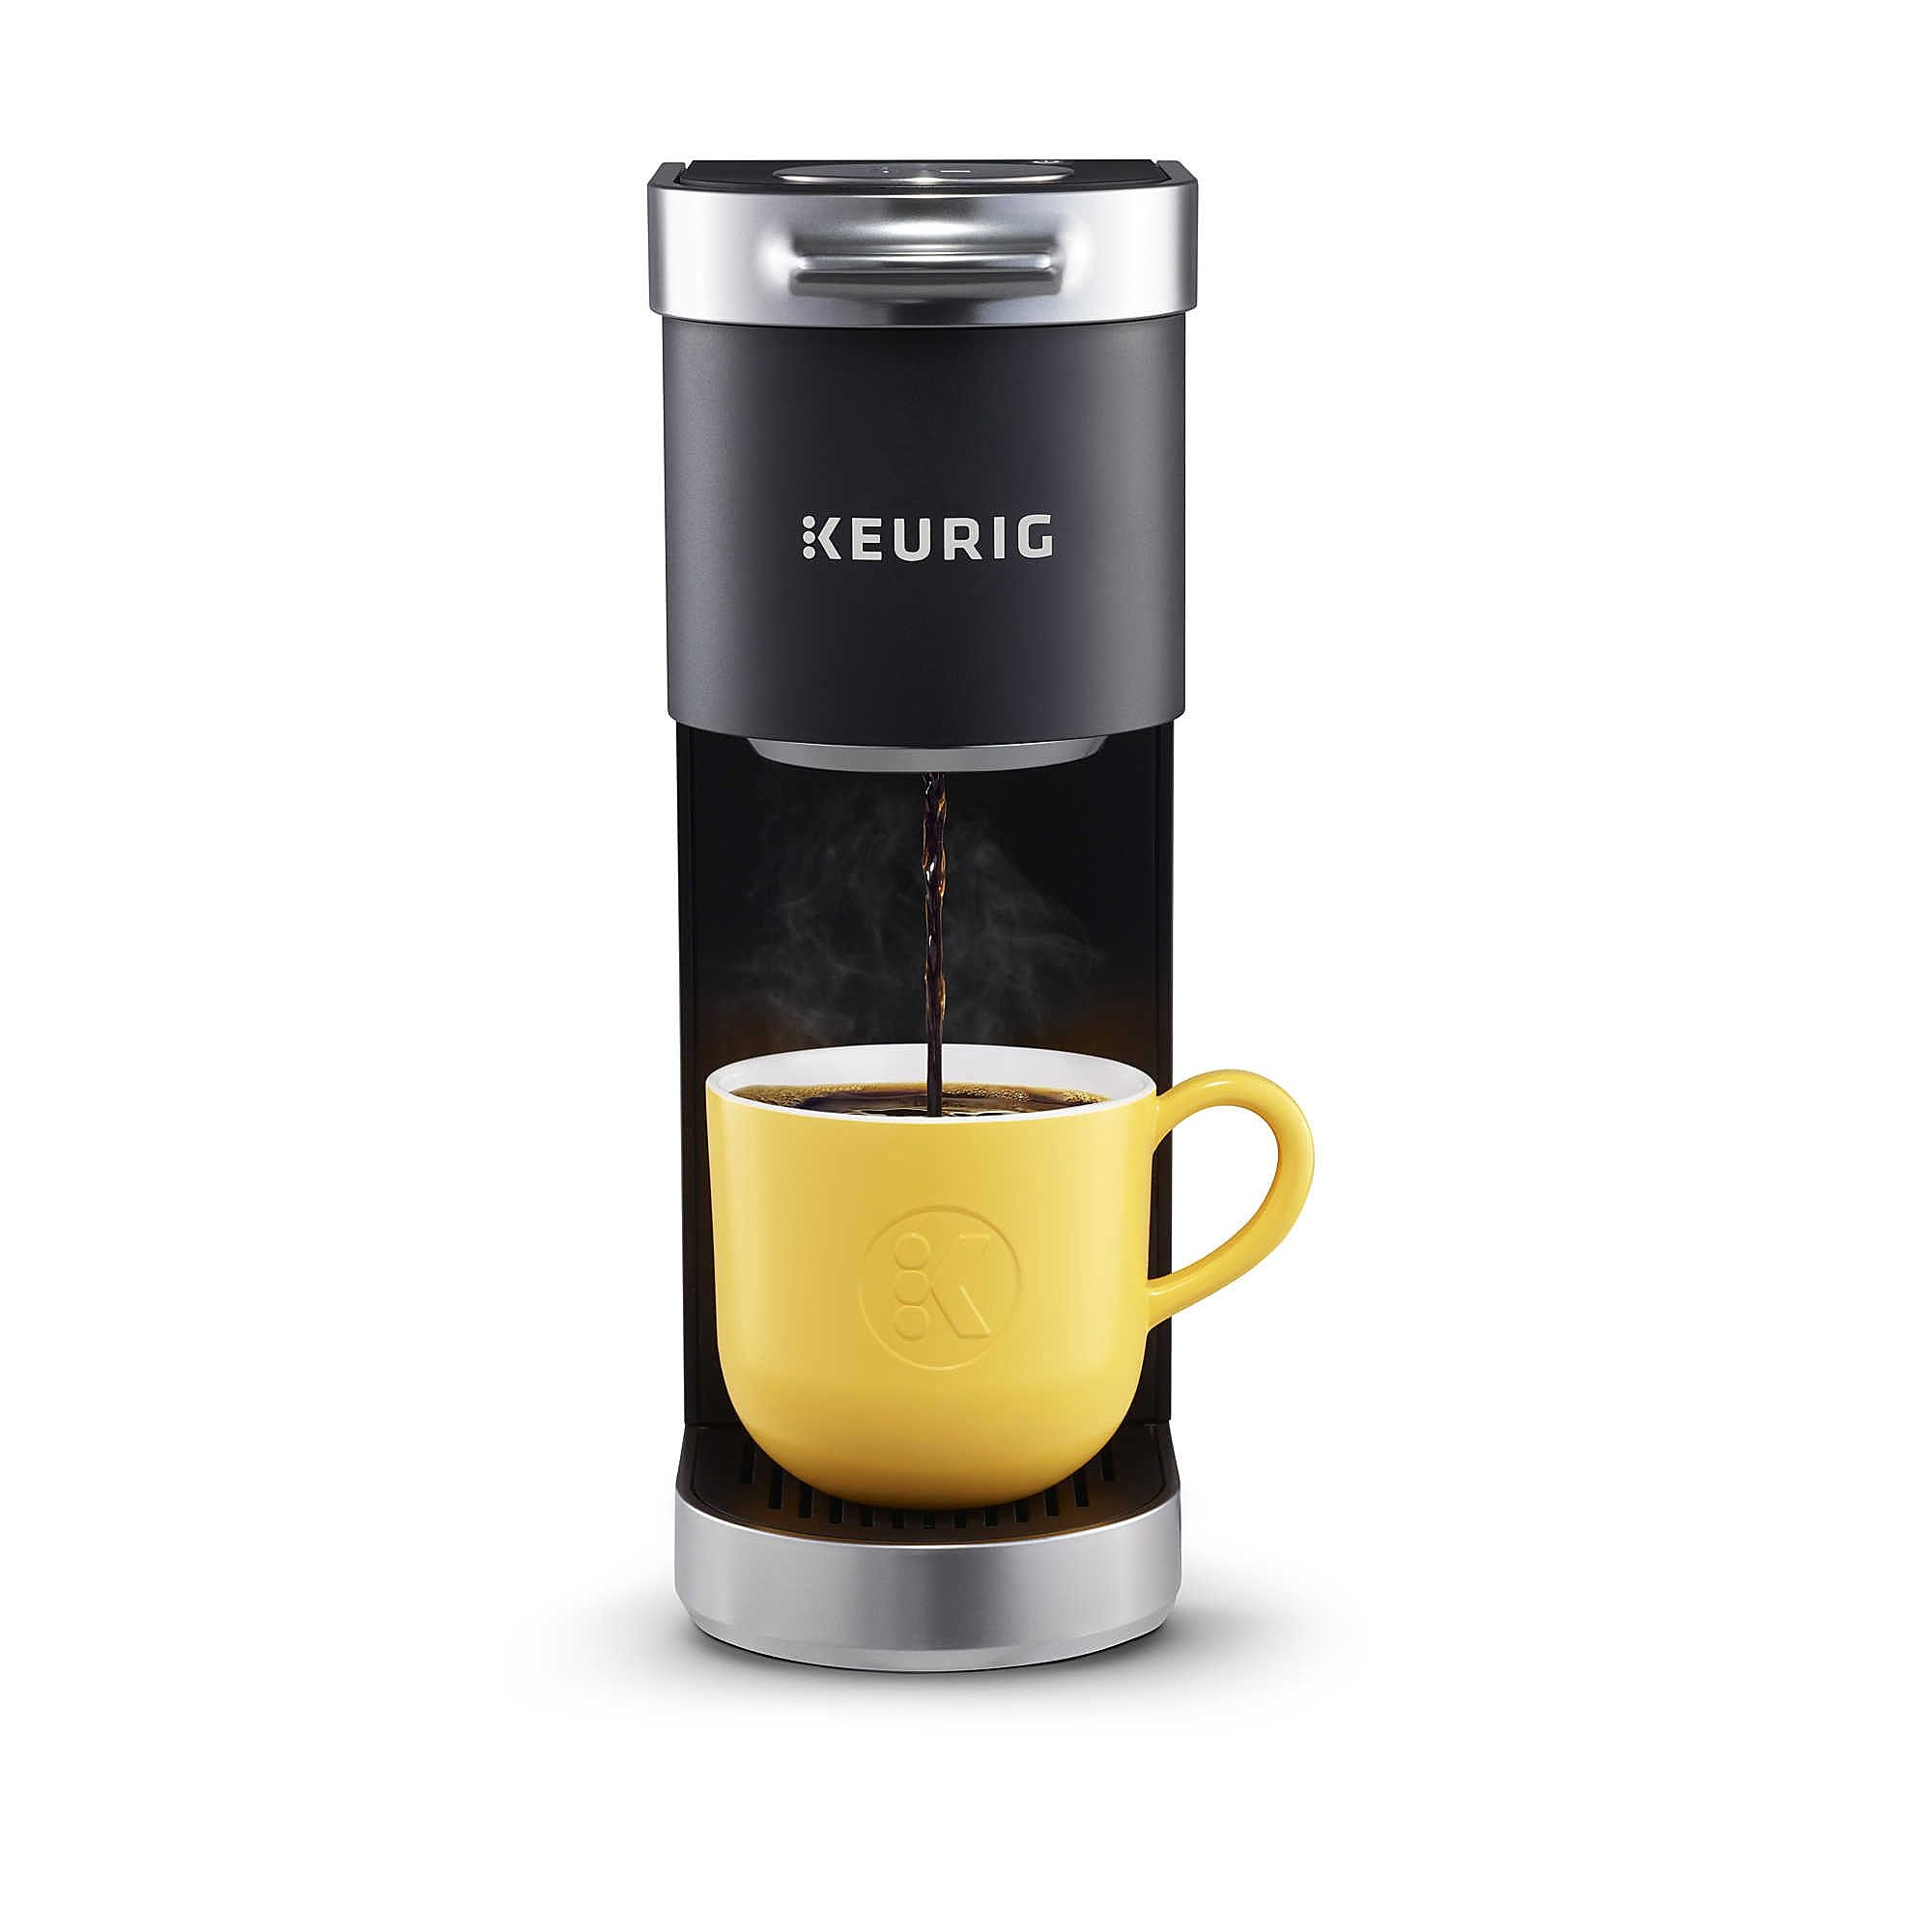 Keurig K Mini Plus Single Serve K Cup Pod Coffee Maker Camping Coffee Maker Single Coffee Maker Pod Coffee Makers